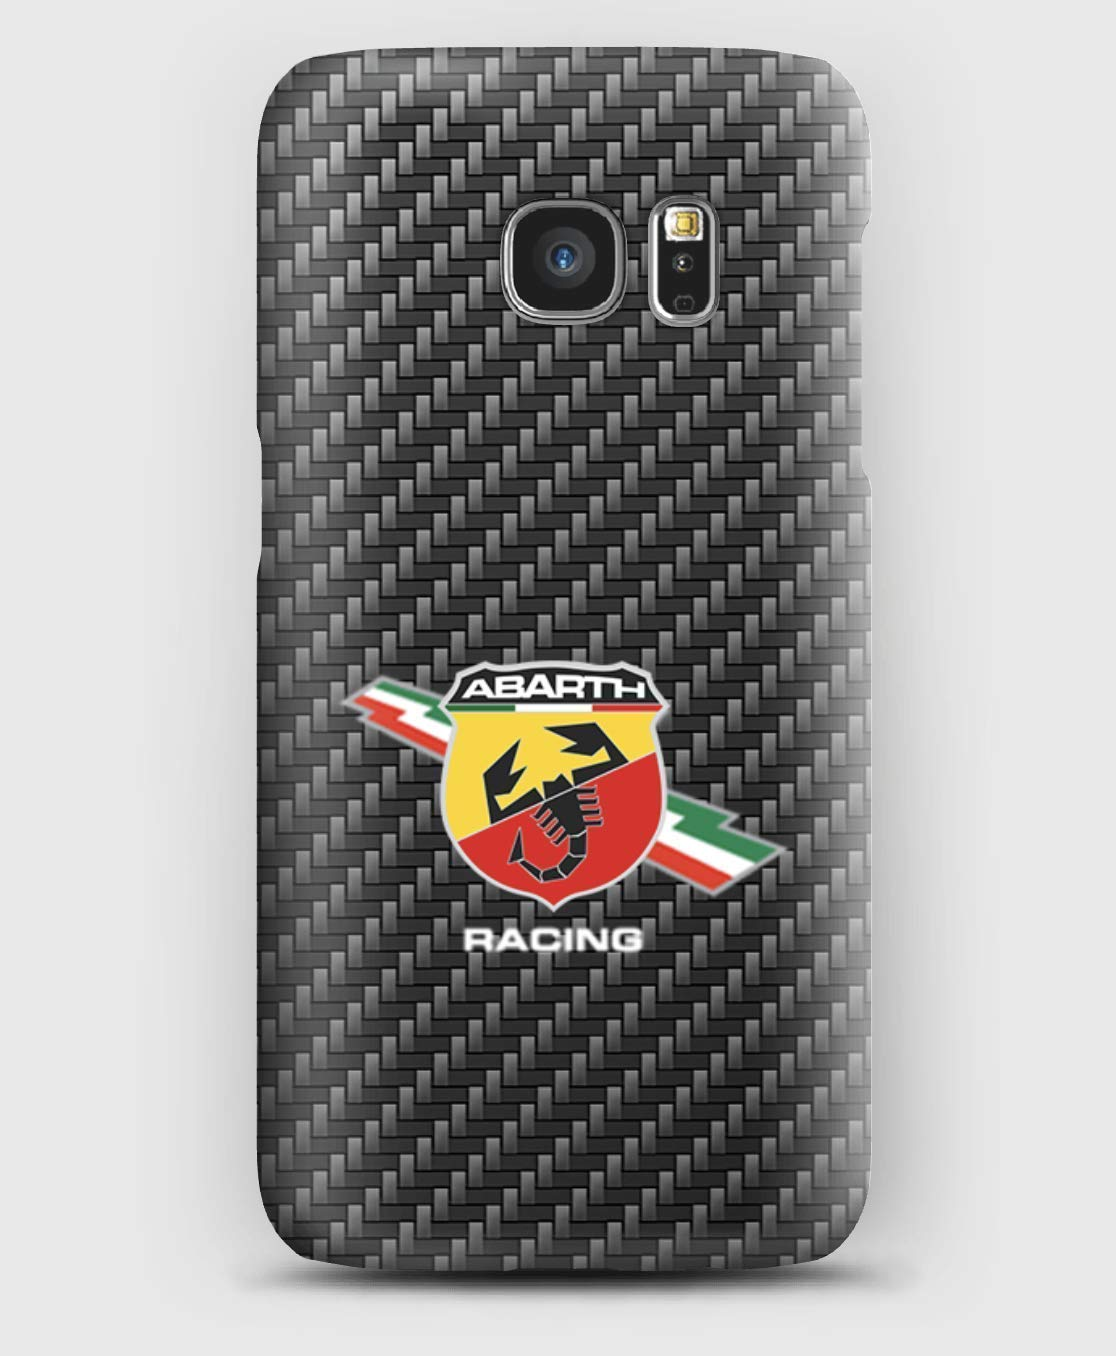 Coque Samsung S5, S6, S7, S8,S9, A3, A5, A7,A8, J3,J5, Note 4,5,8,9, Grand prime, Abarth Racing